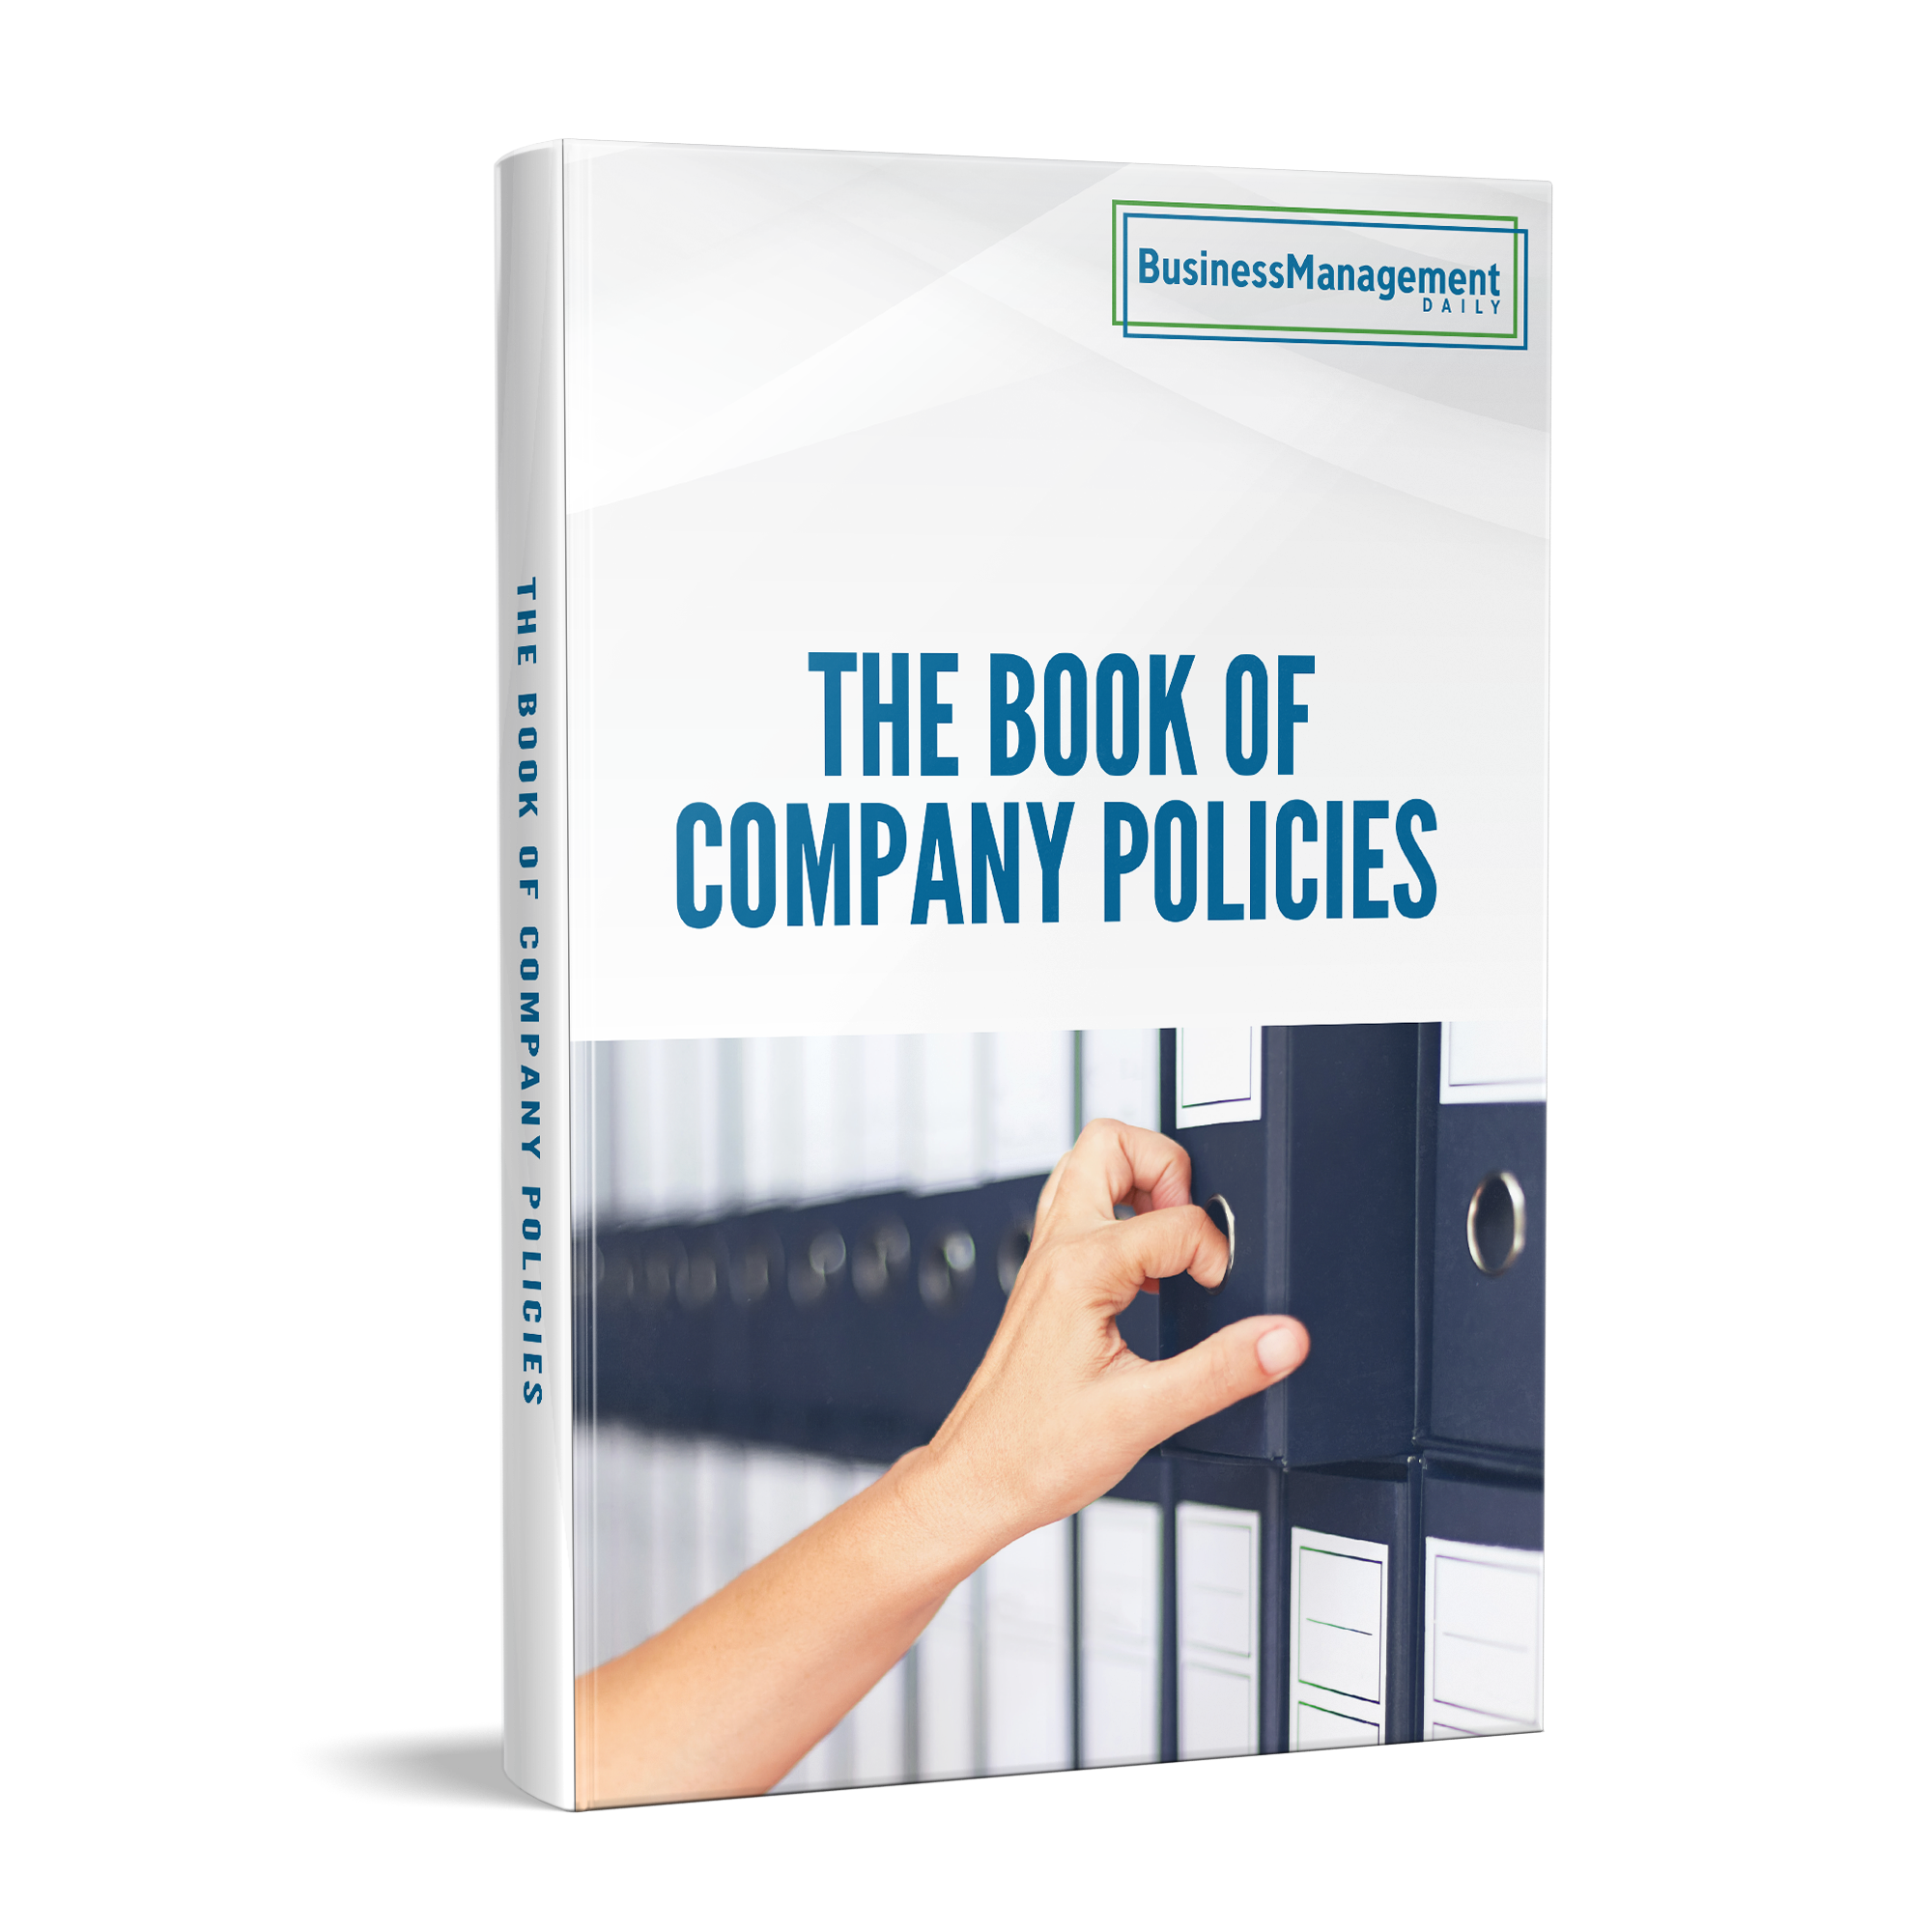 The Book of Company Policies